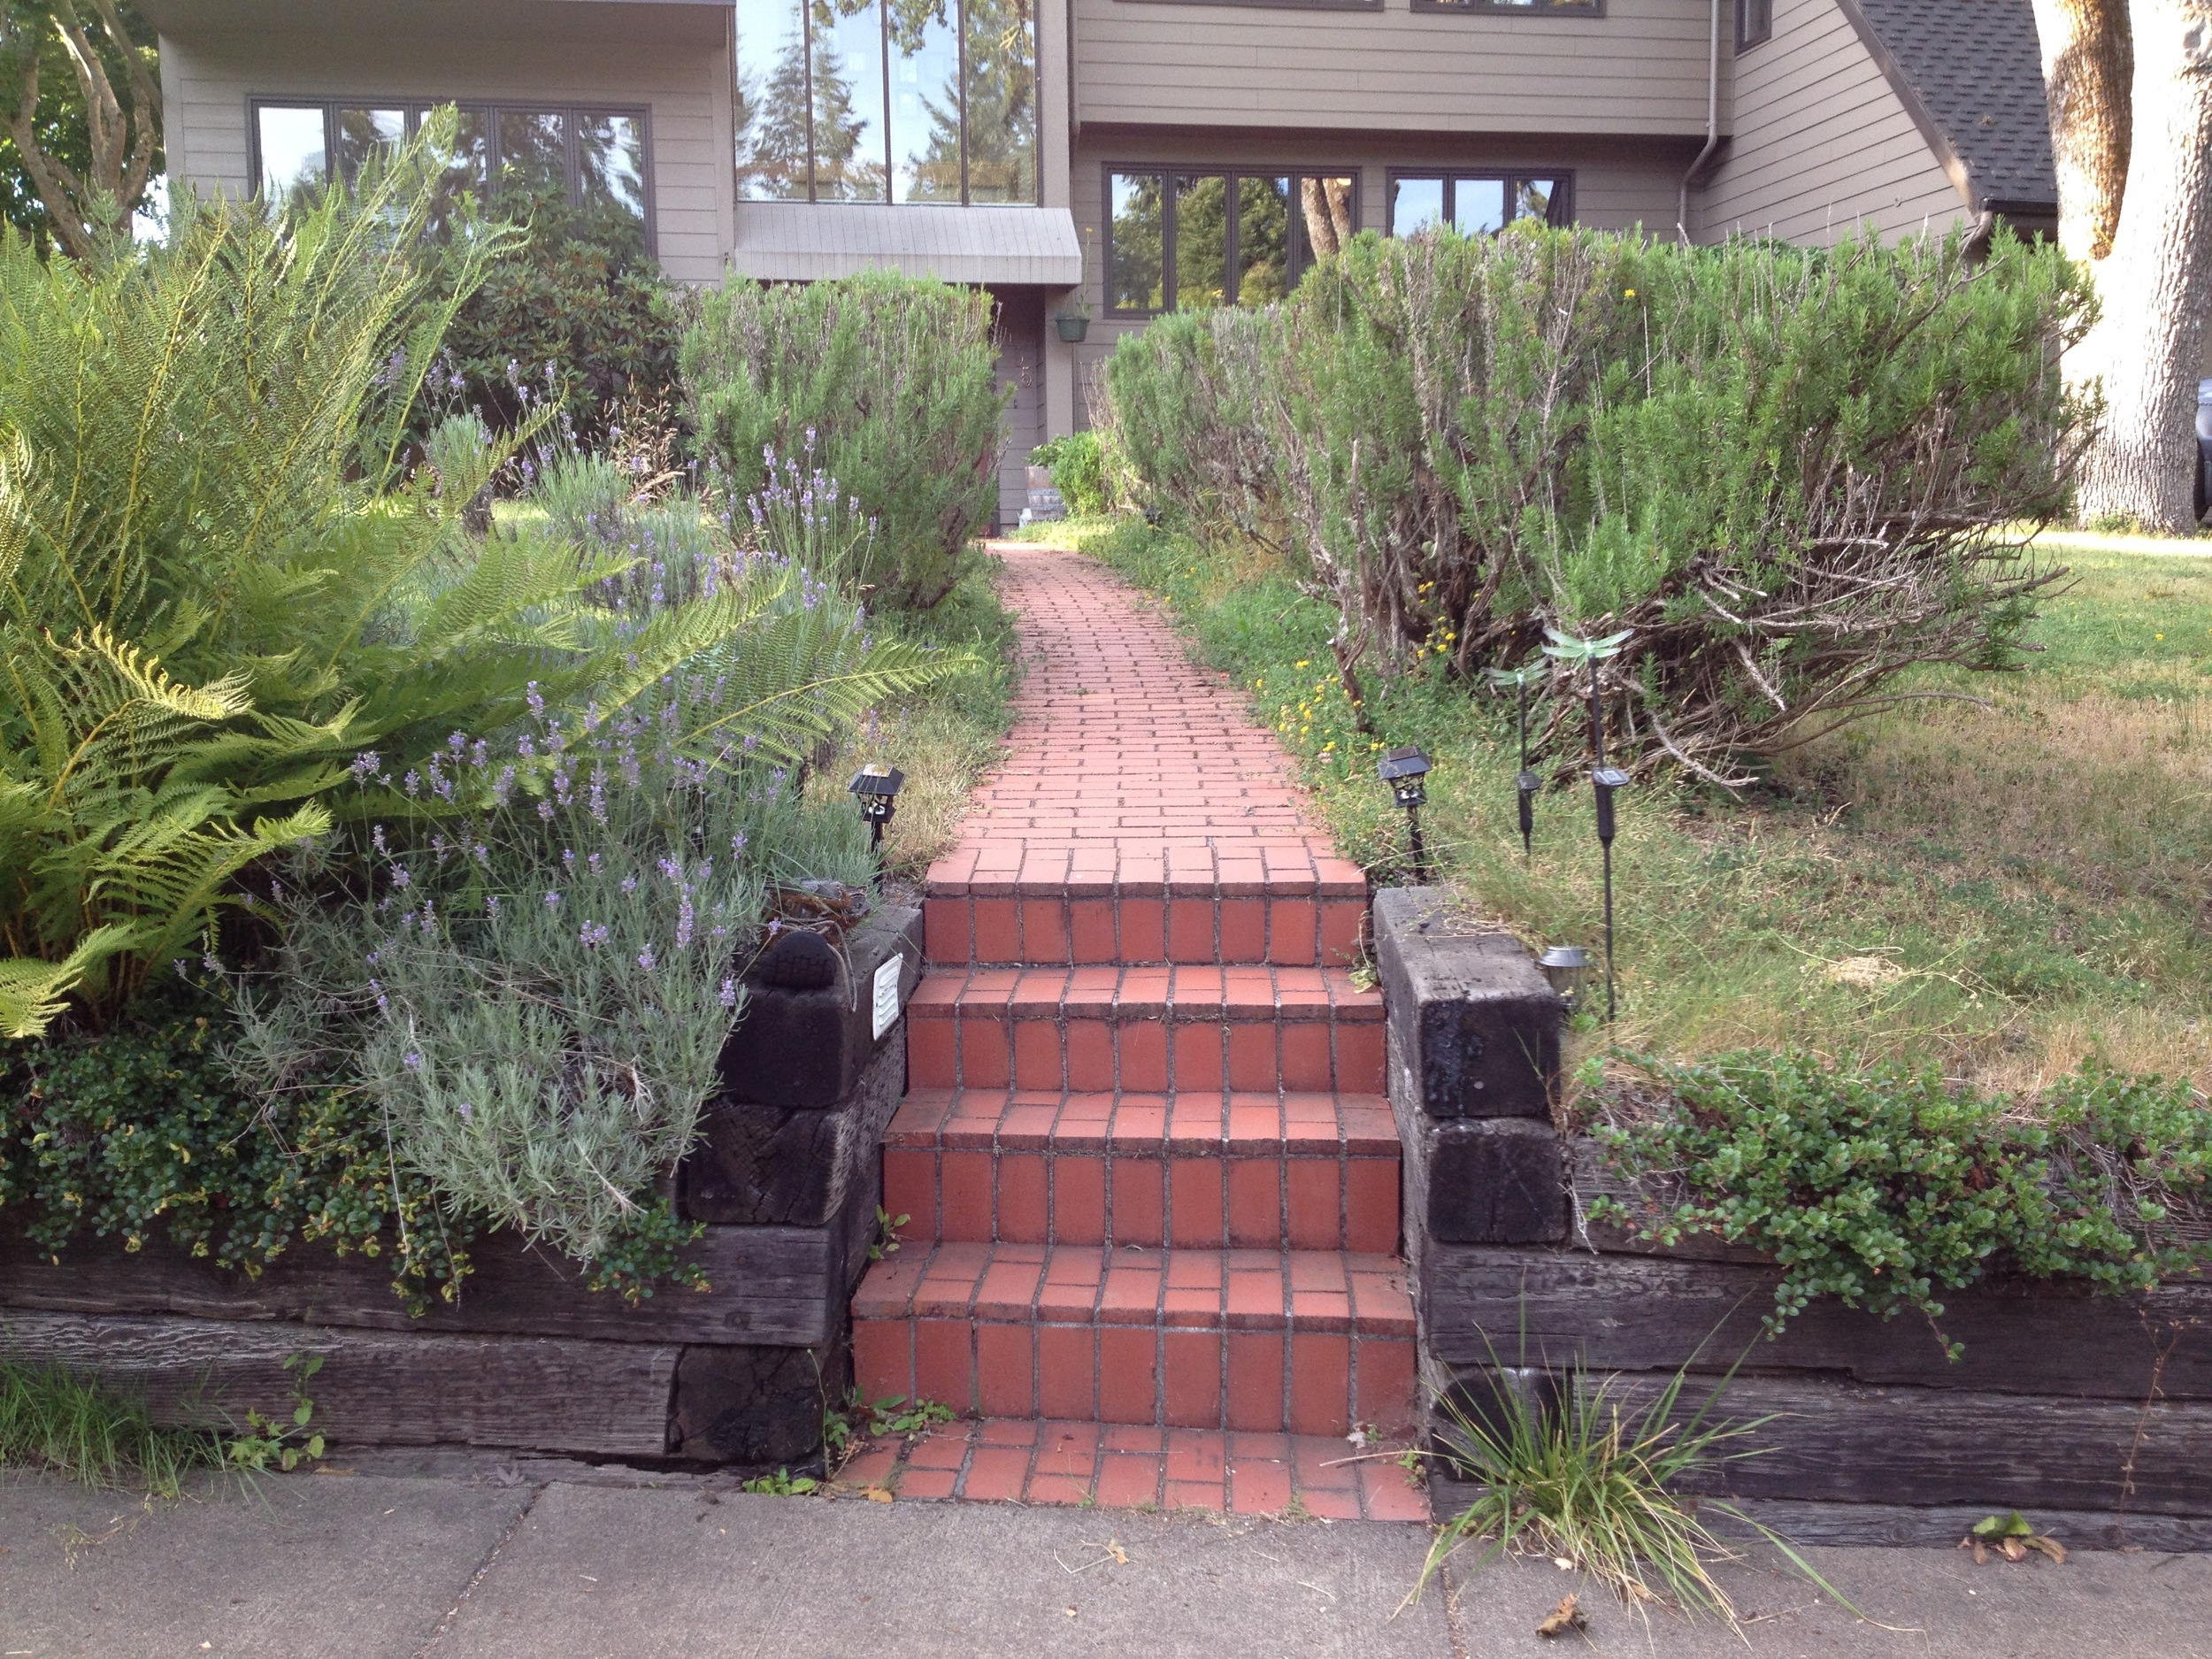 Main Entry Pathway: Before